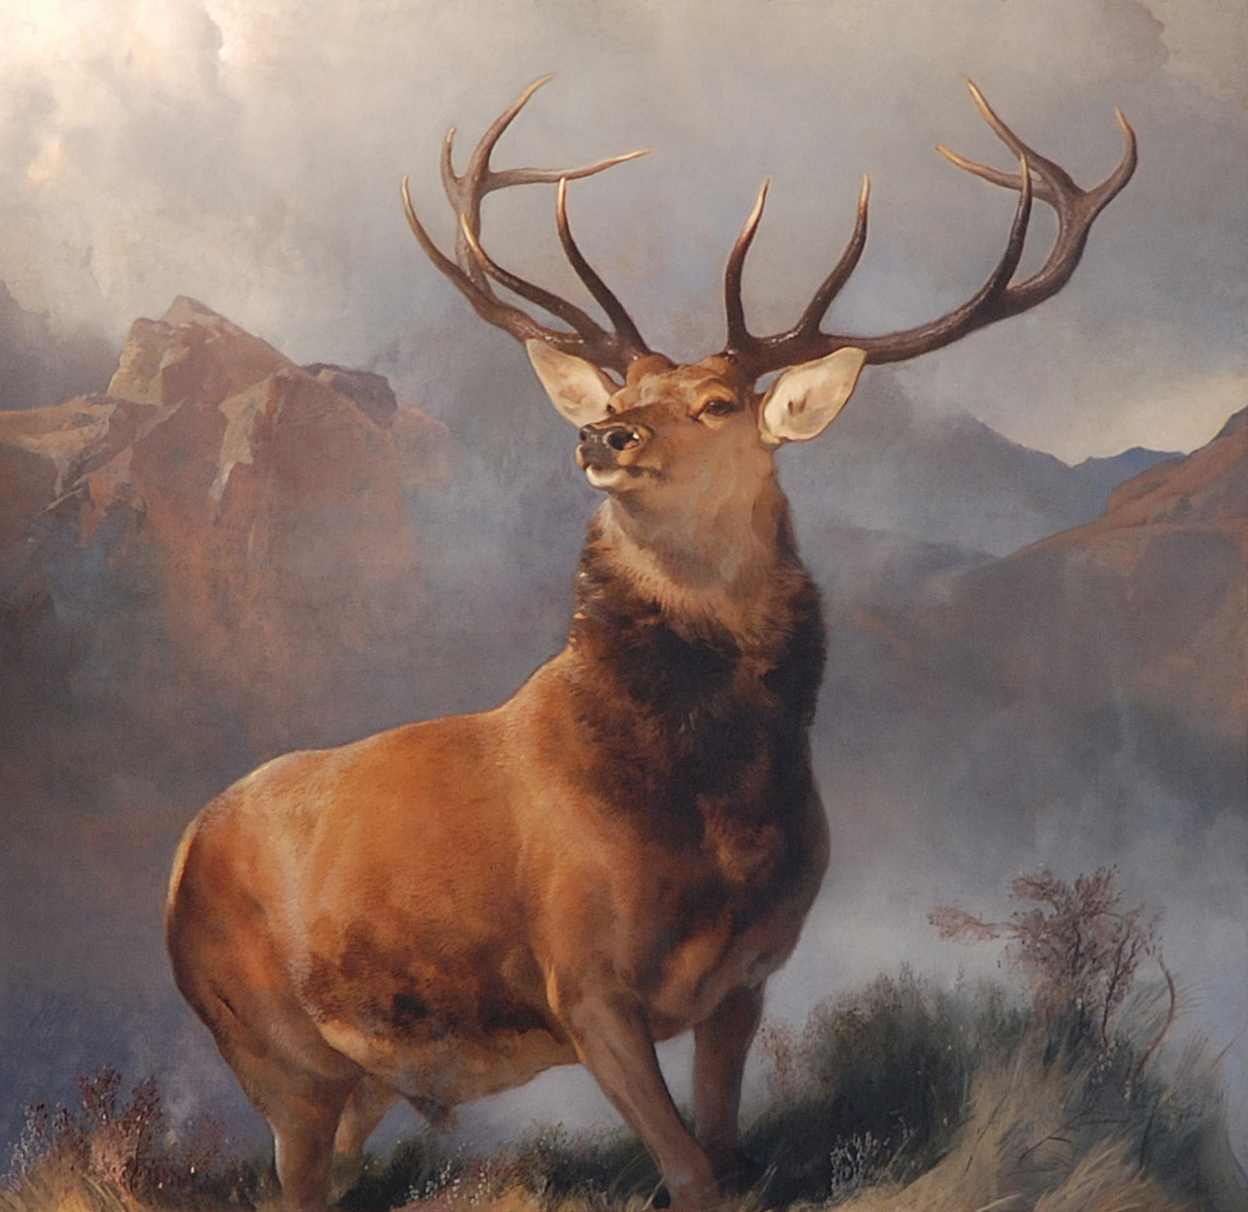 Monarch_of_the_Glen,_Edwin_Landseer,_1851